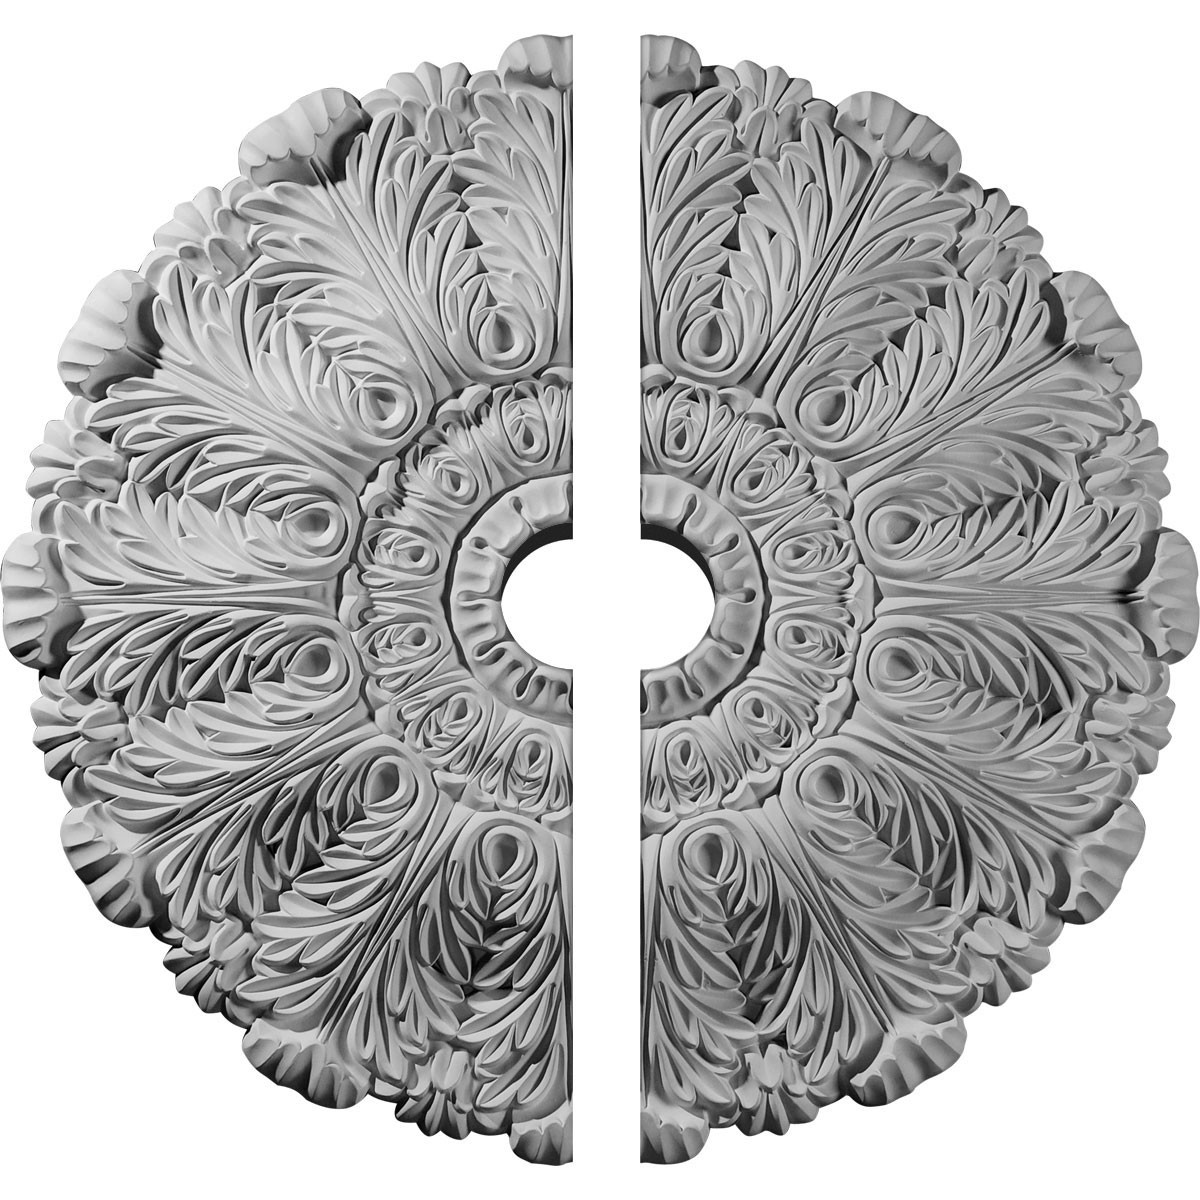 """EM-CM31DU2-04000 - 31""""OD x 4""""ID x 1 1/2""""P Durham Ceiling Medallion, Two Piece (Fits Canopies up to 4 1/4"""")"""